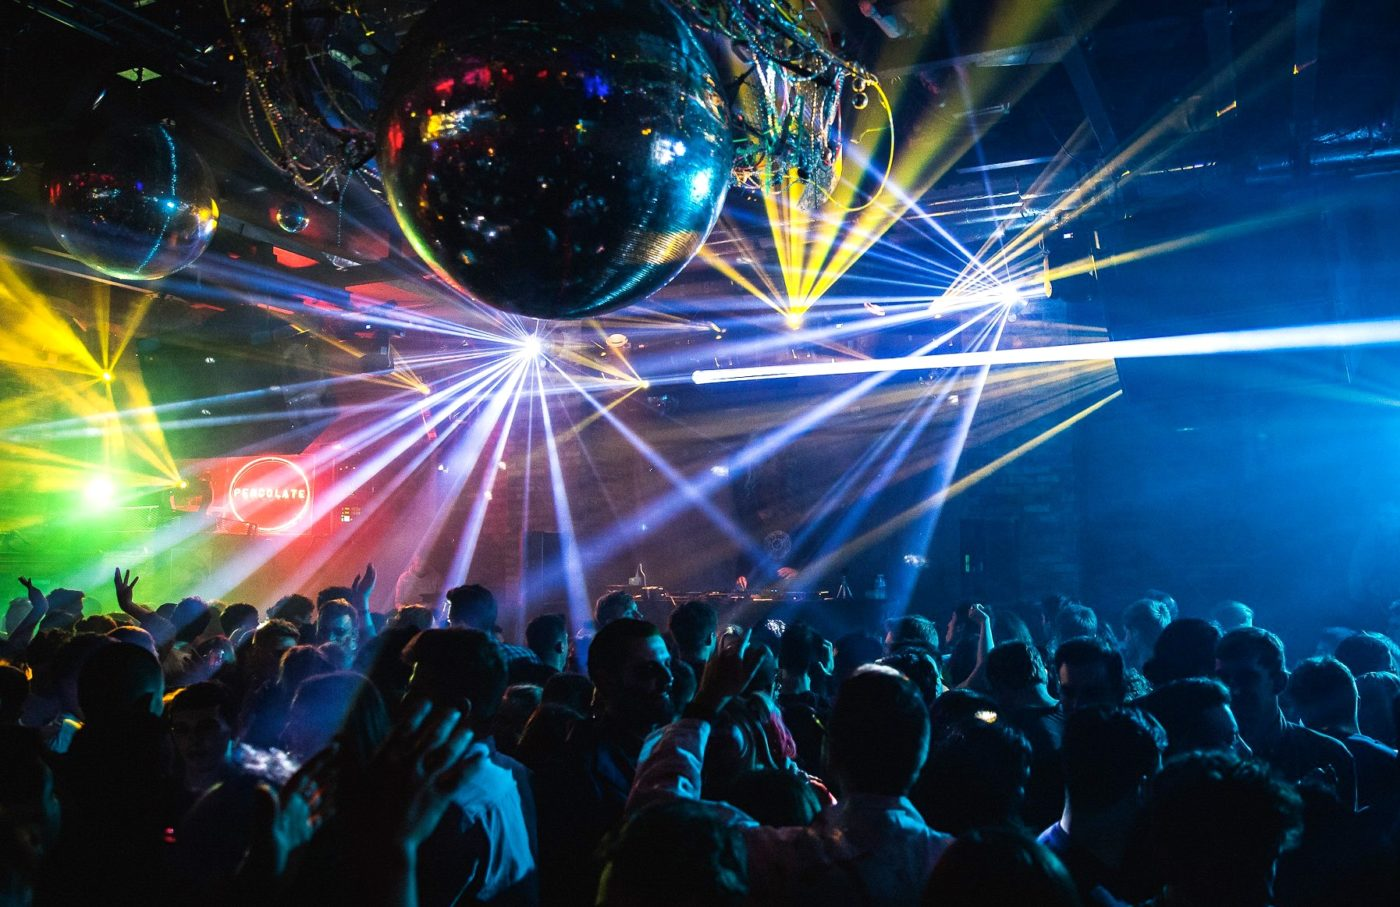 Image of a crowd dancing at a party underneath a large disco ball